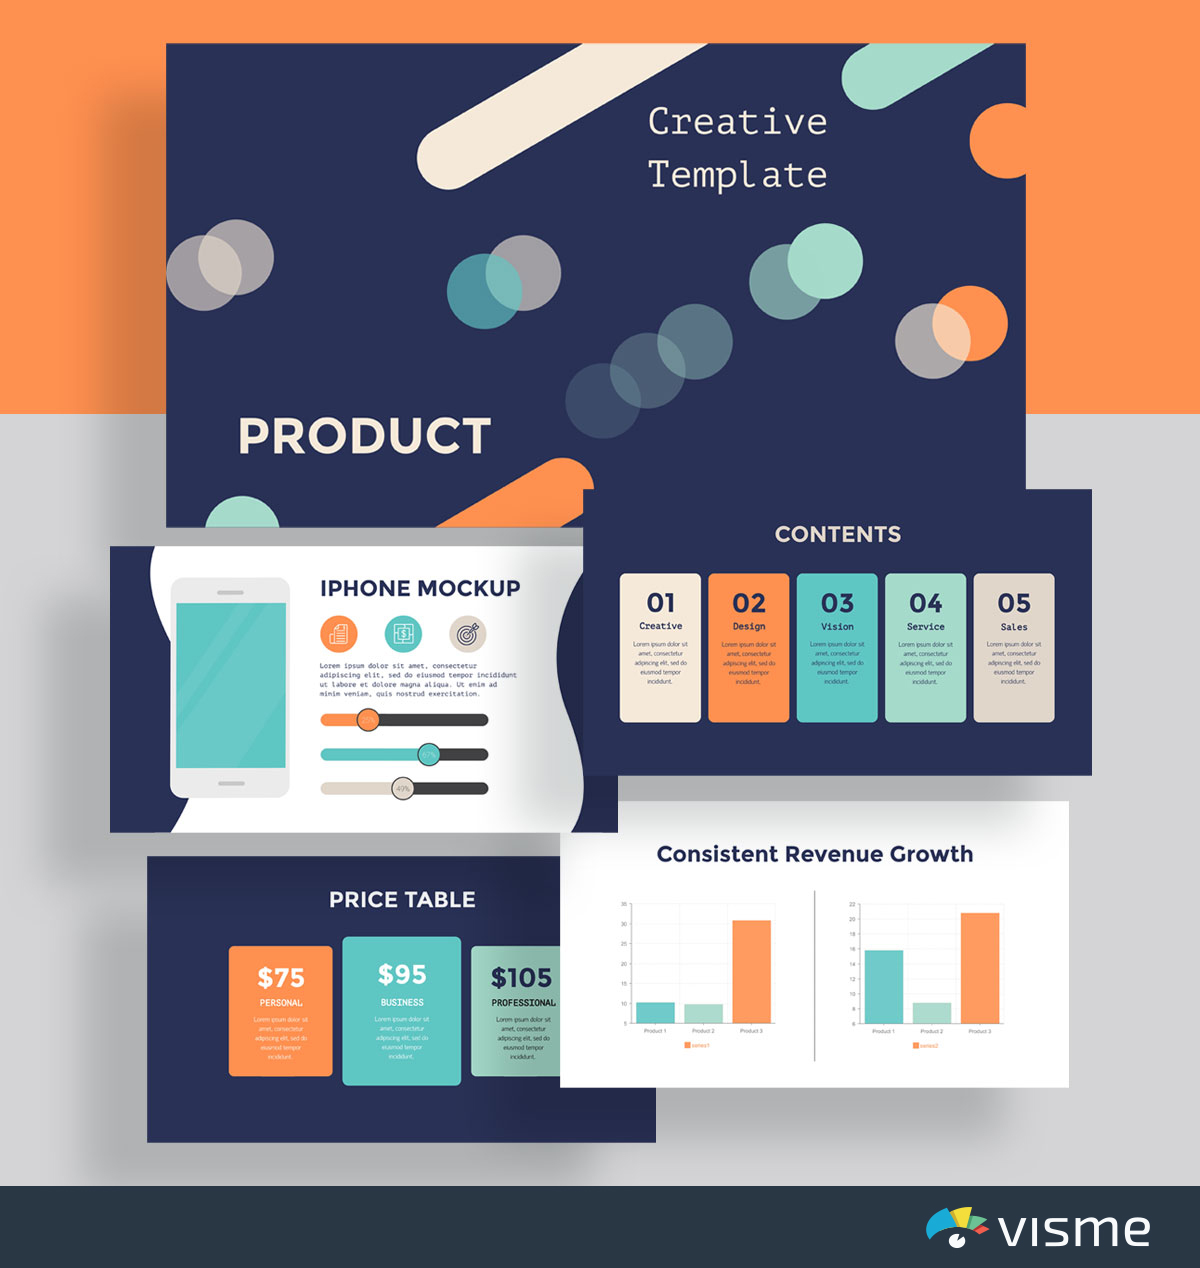 best presentation deck templates - creative product template